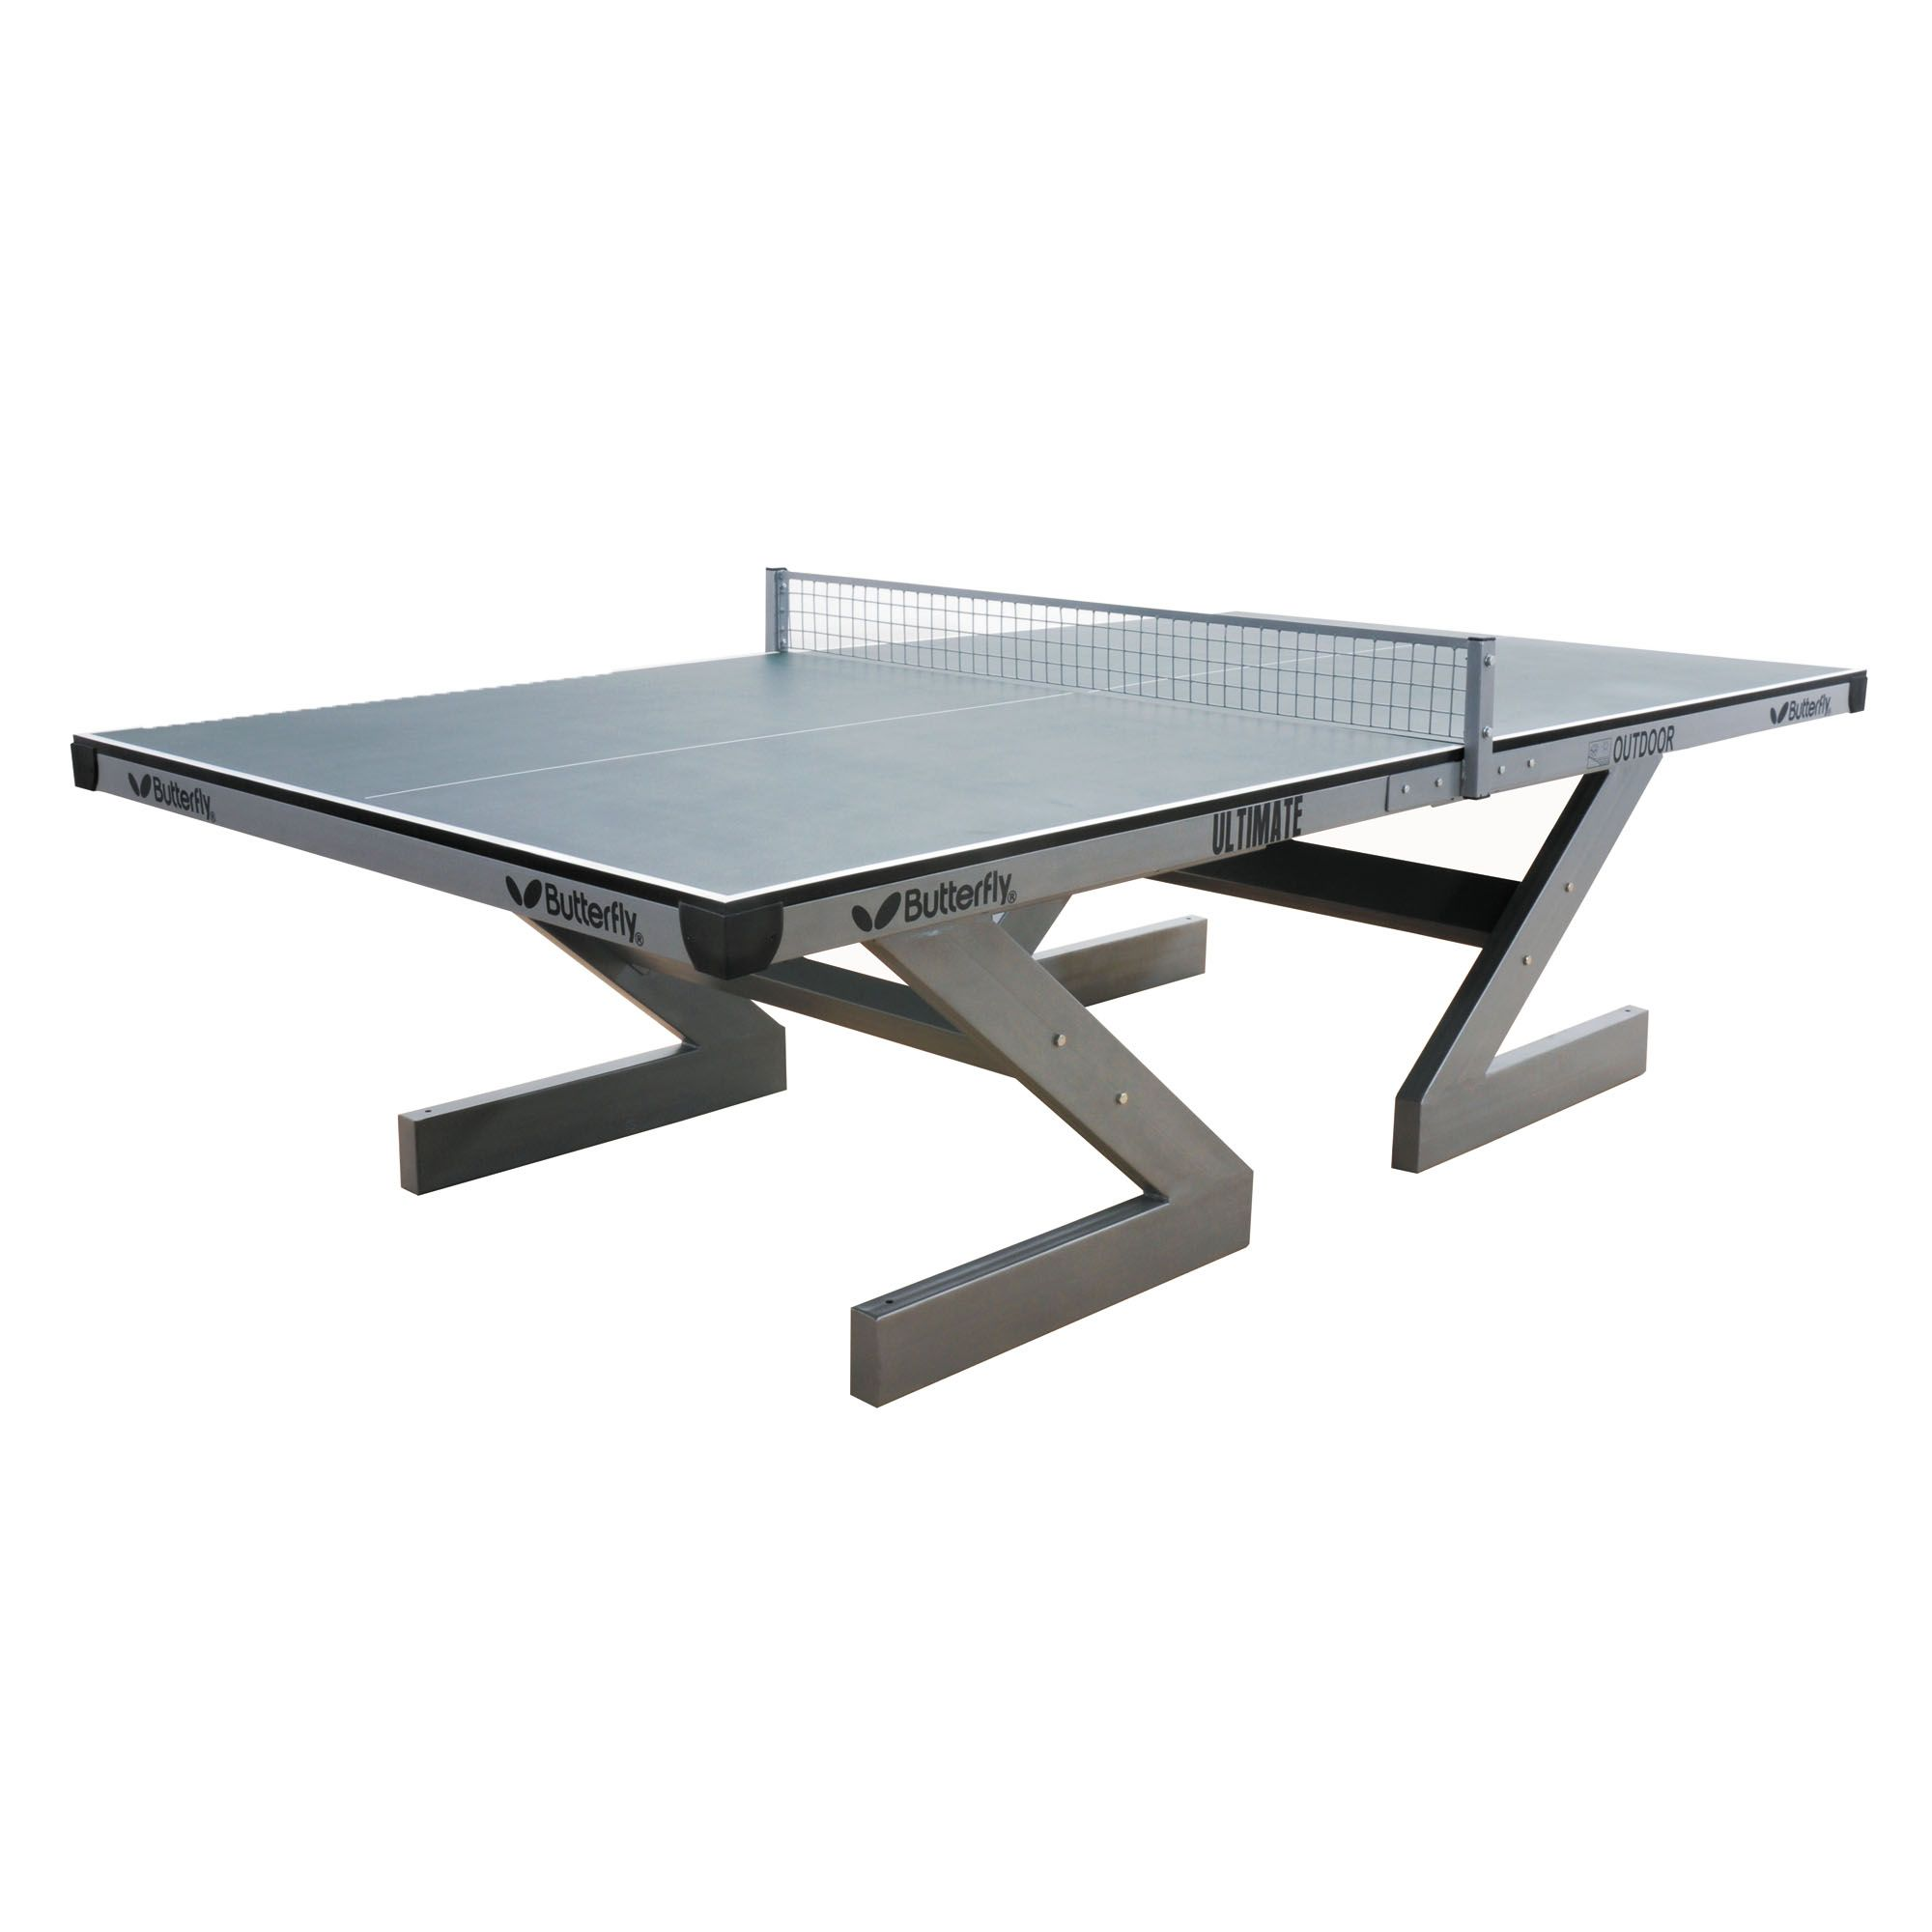 Butterfly ultimate outdoor table tennis table - Weatherproof table tennis table ...